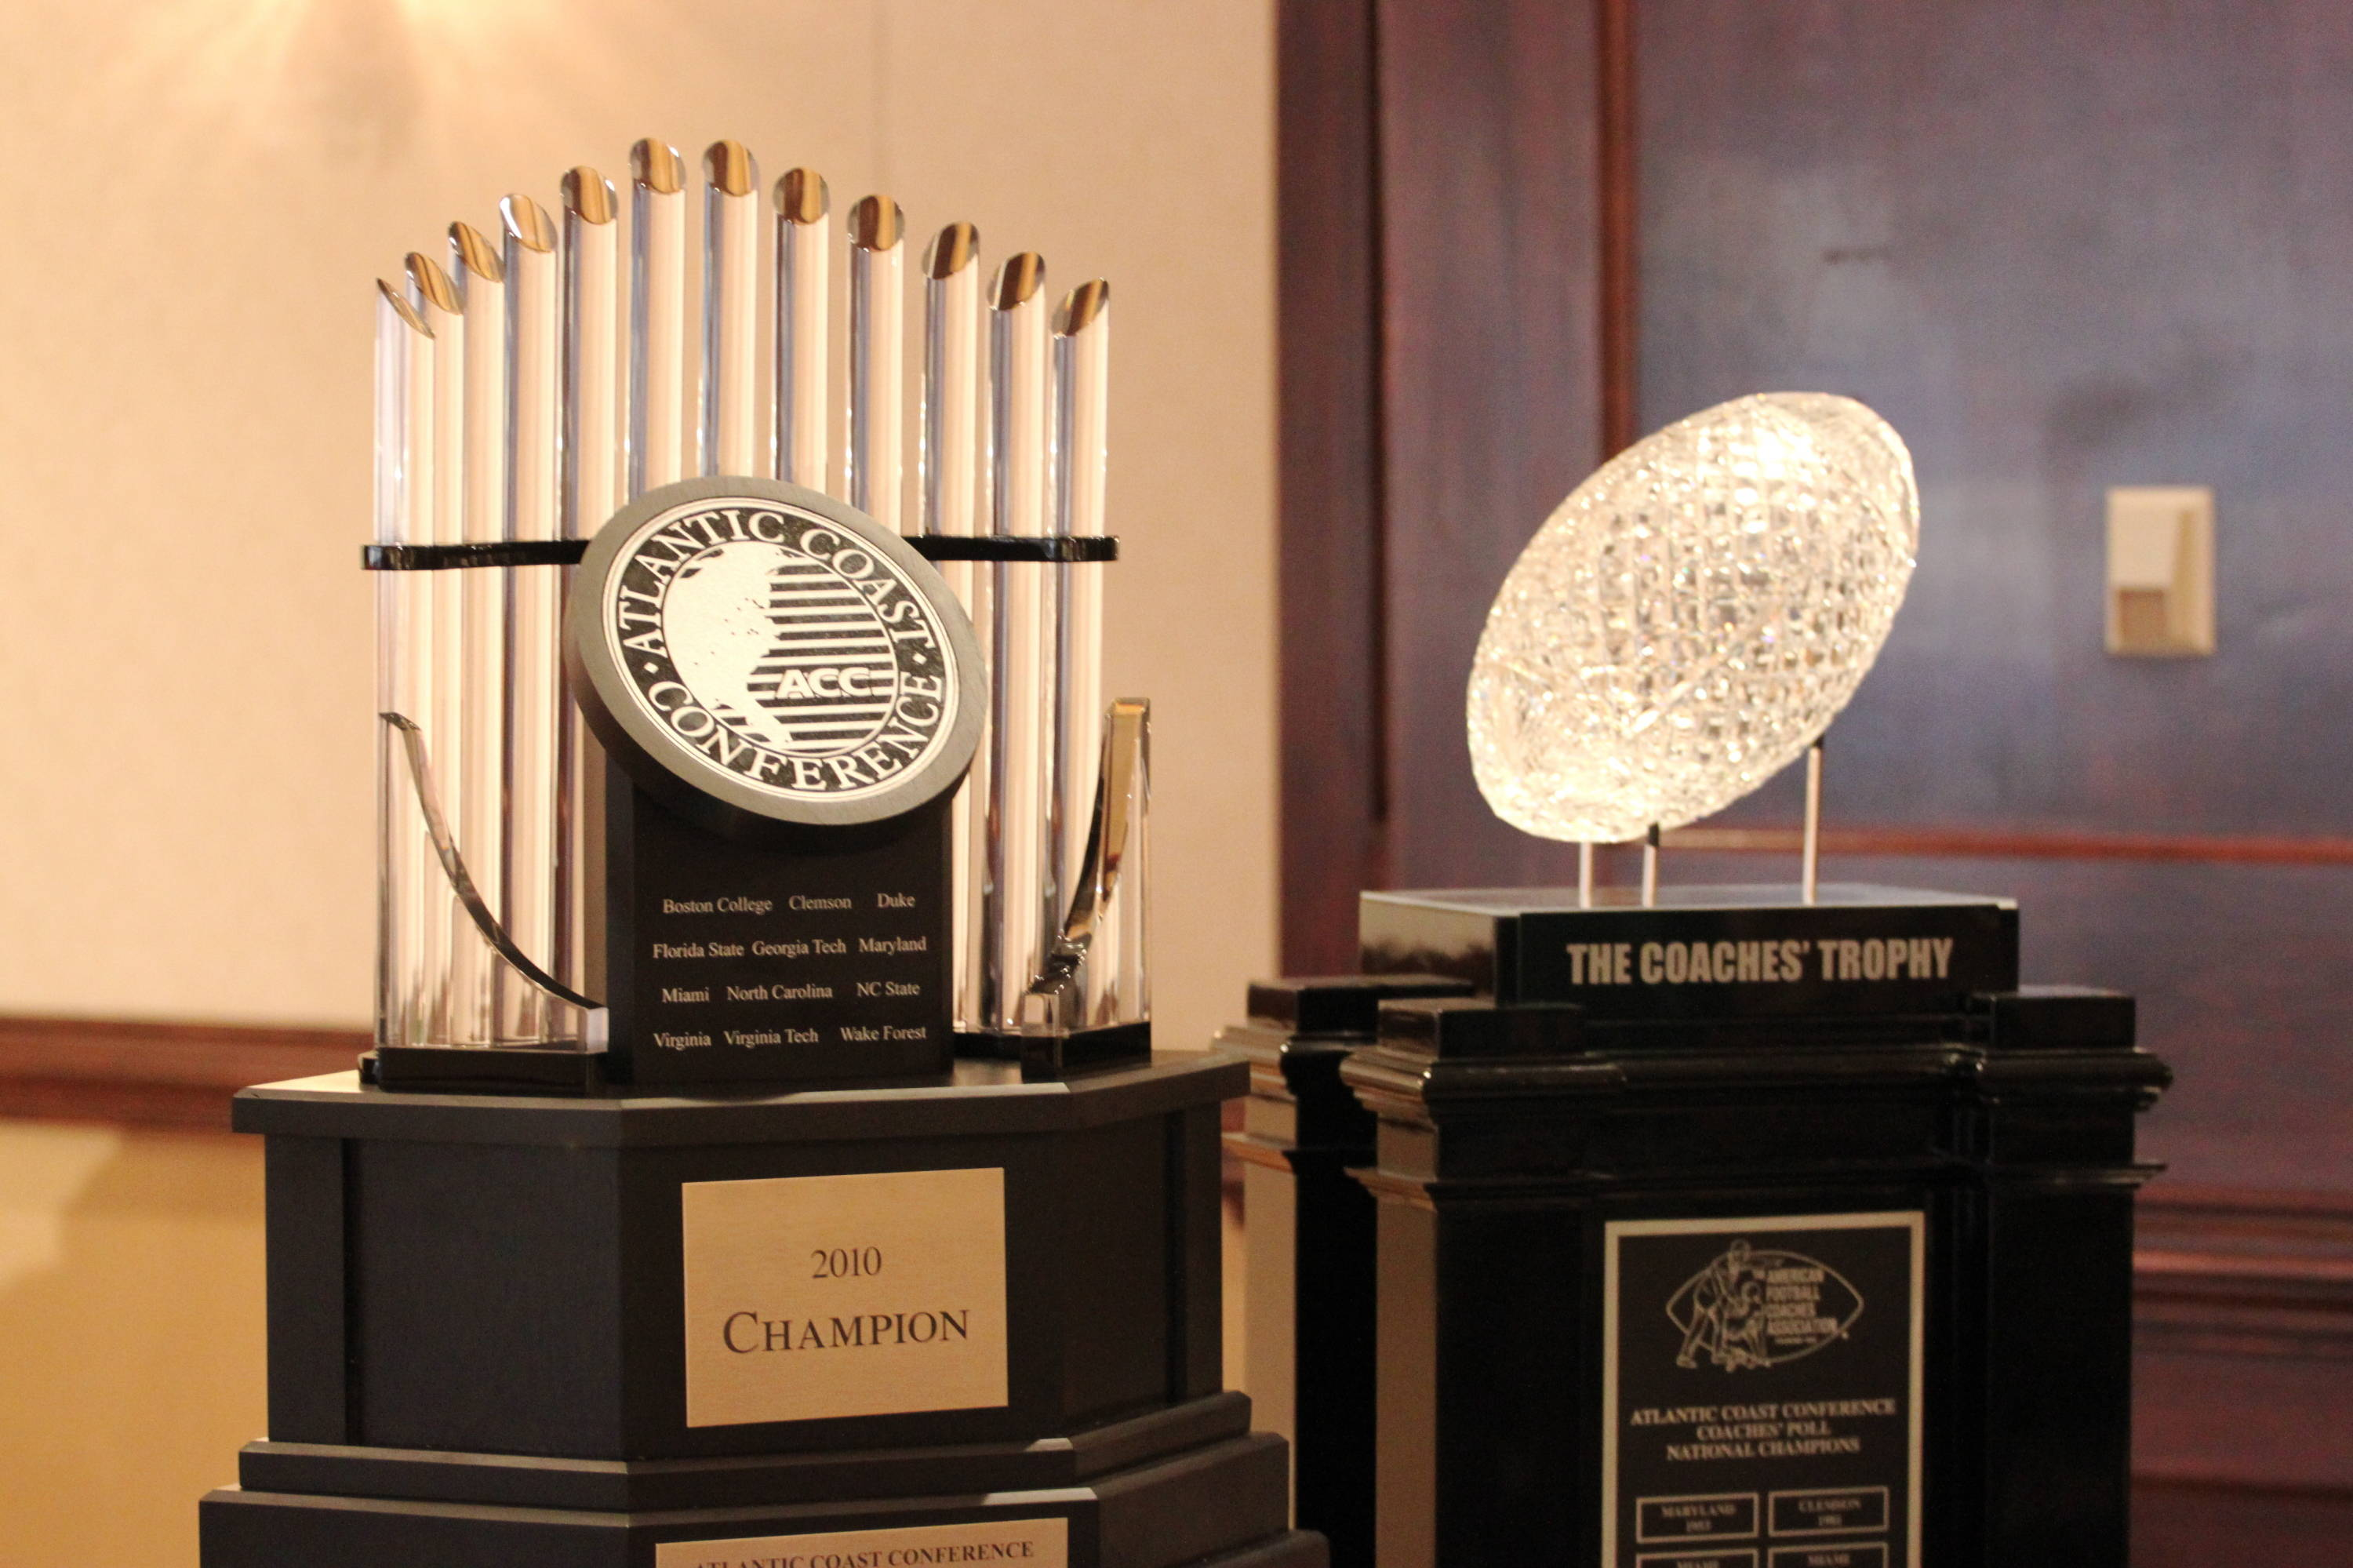 The ACC and BCS National Championship trophies.